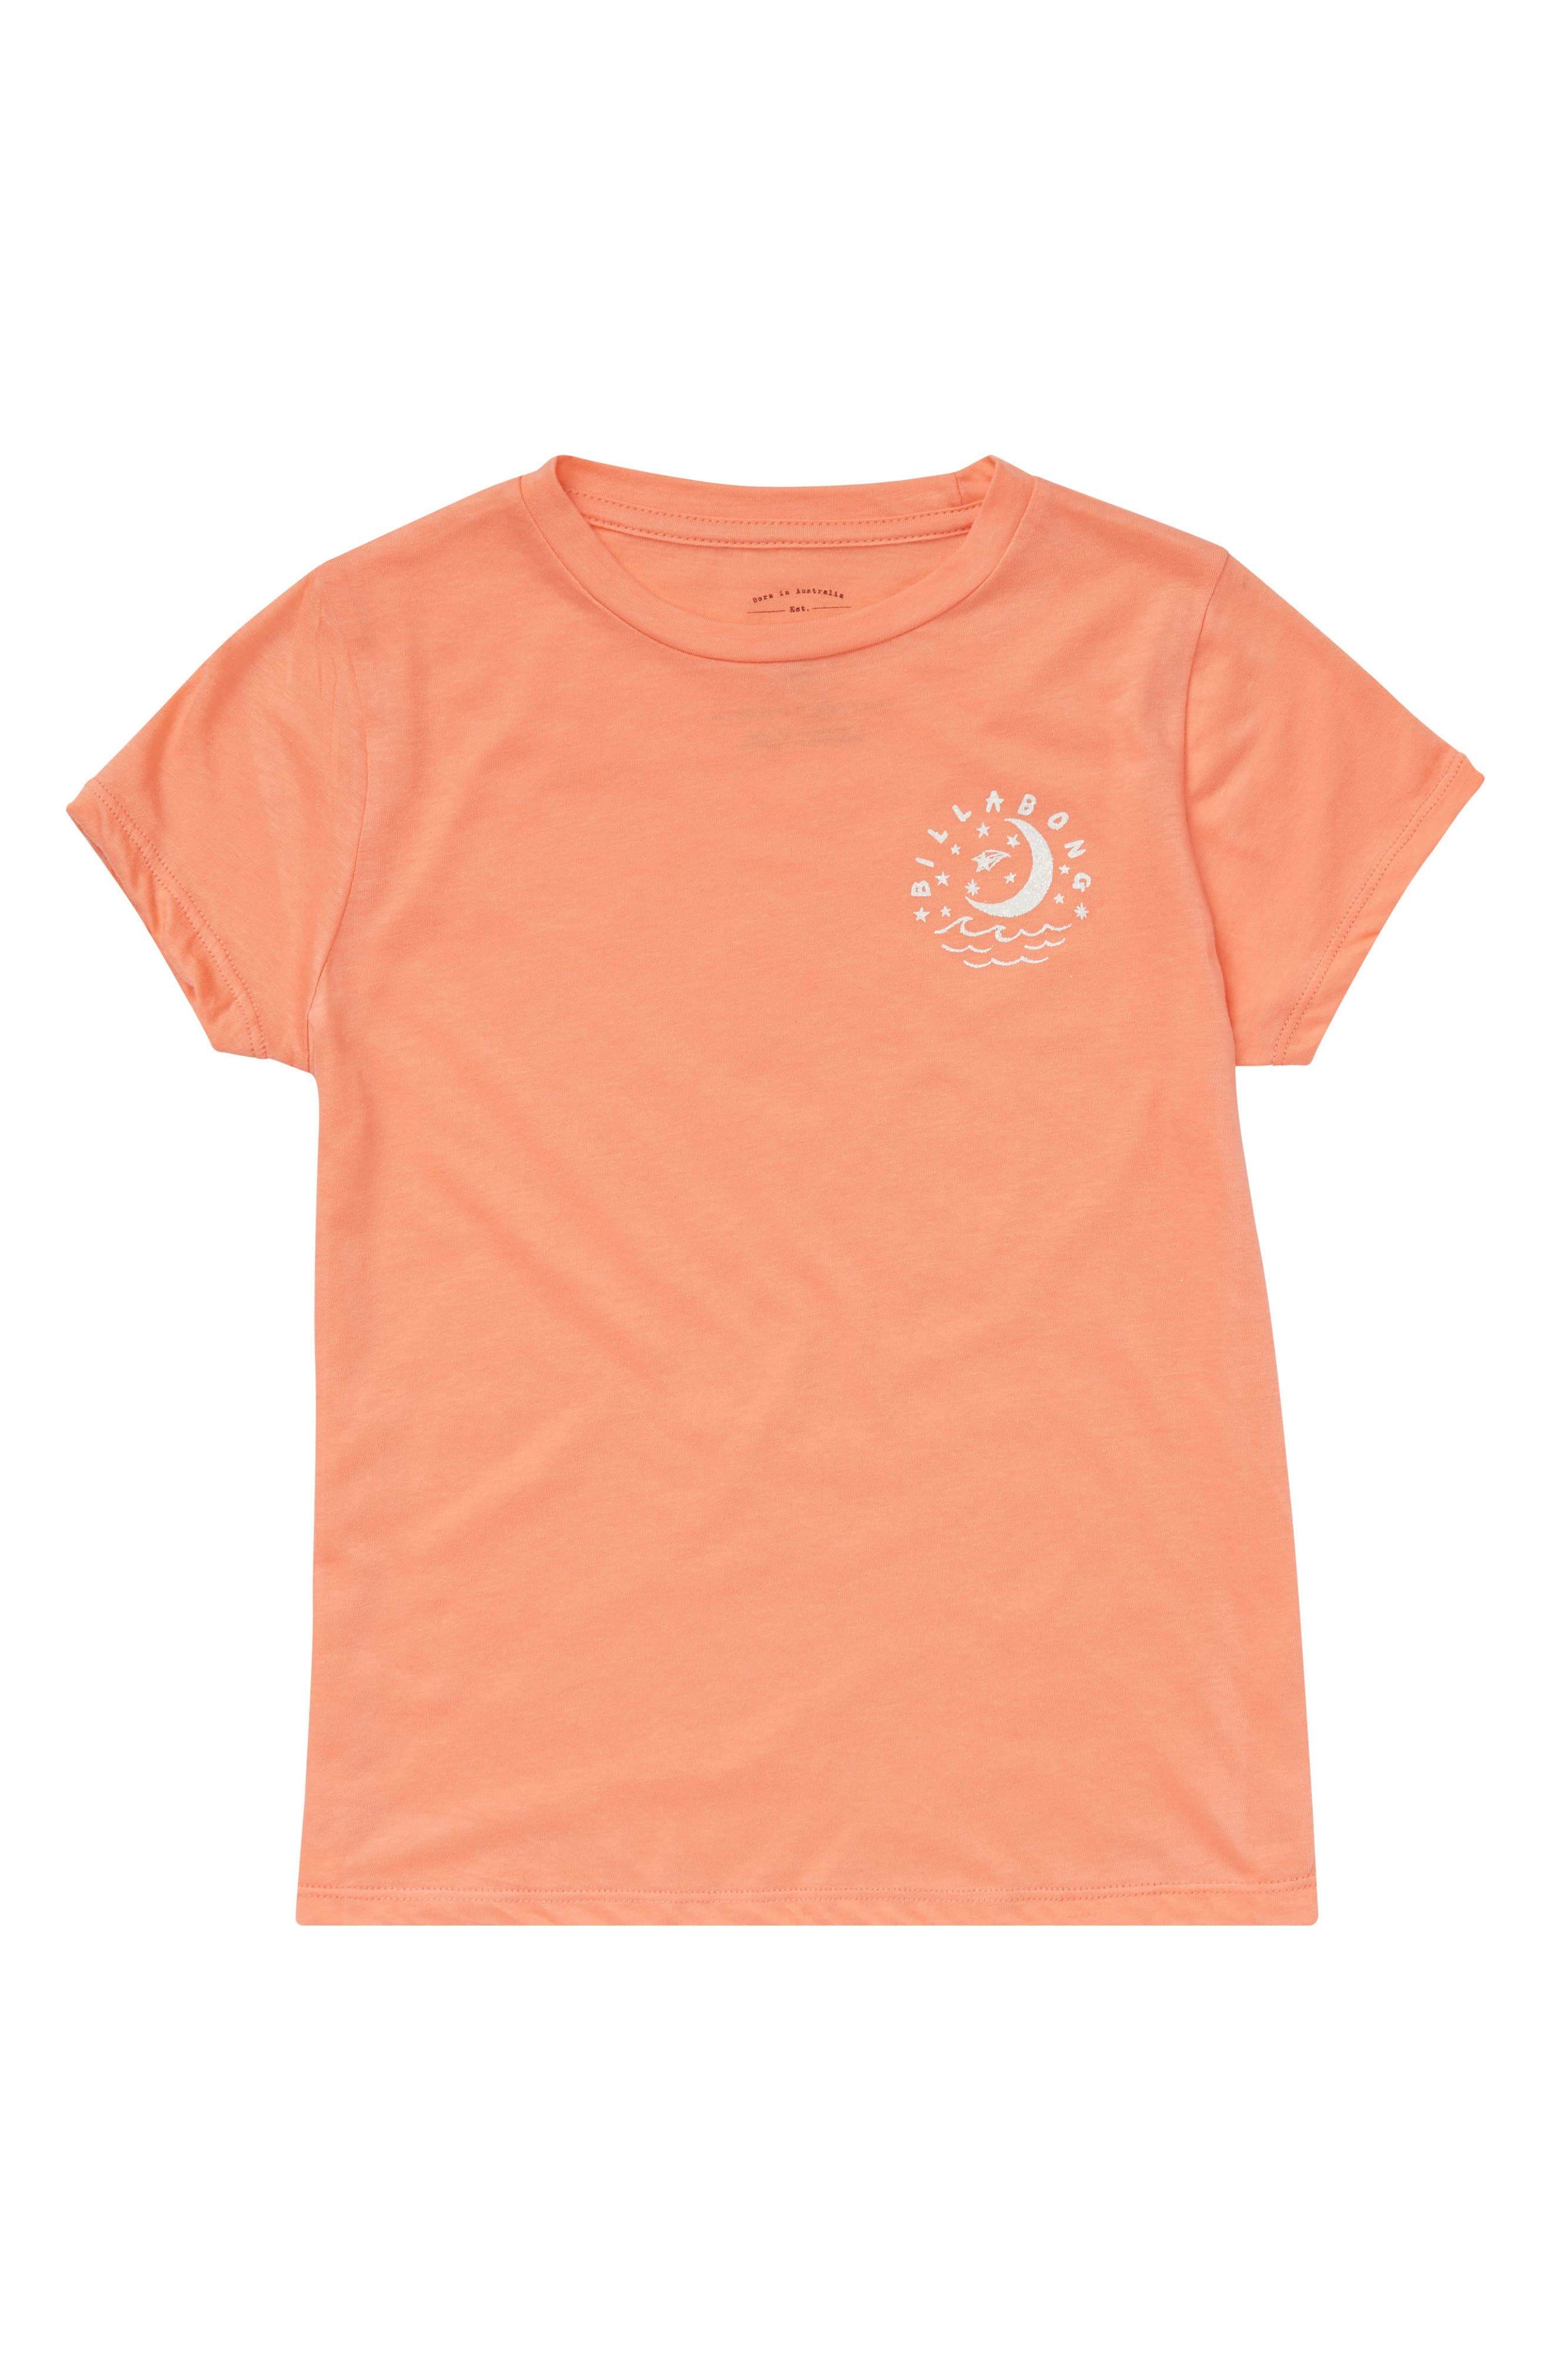 Night Sky Graphic Tee,                         Main,                         color, Sunkissed Coral